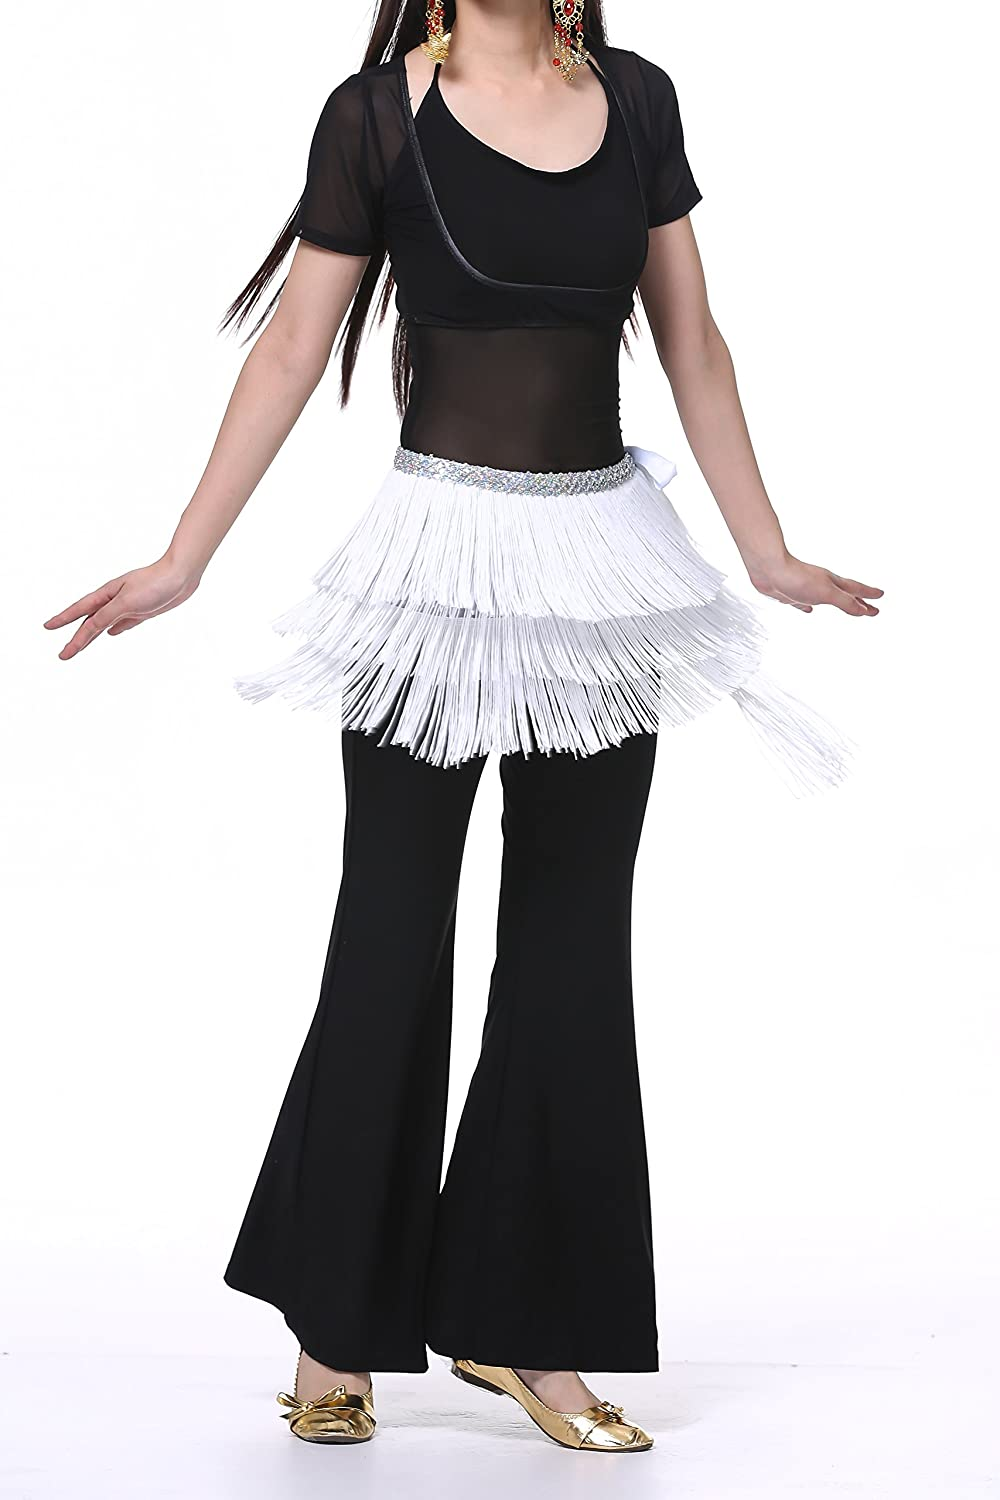 Belly Dance Hip Scarf for Women with Fringes